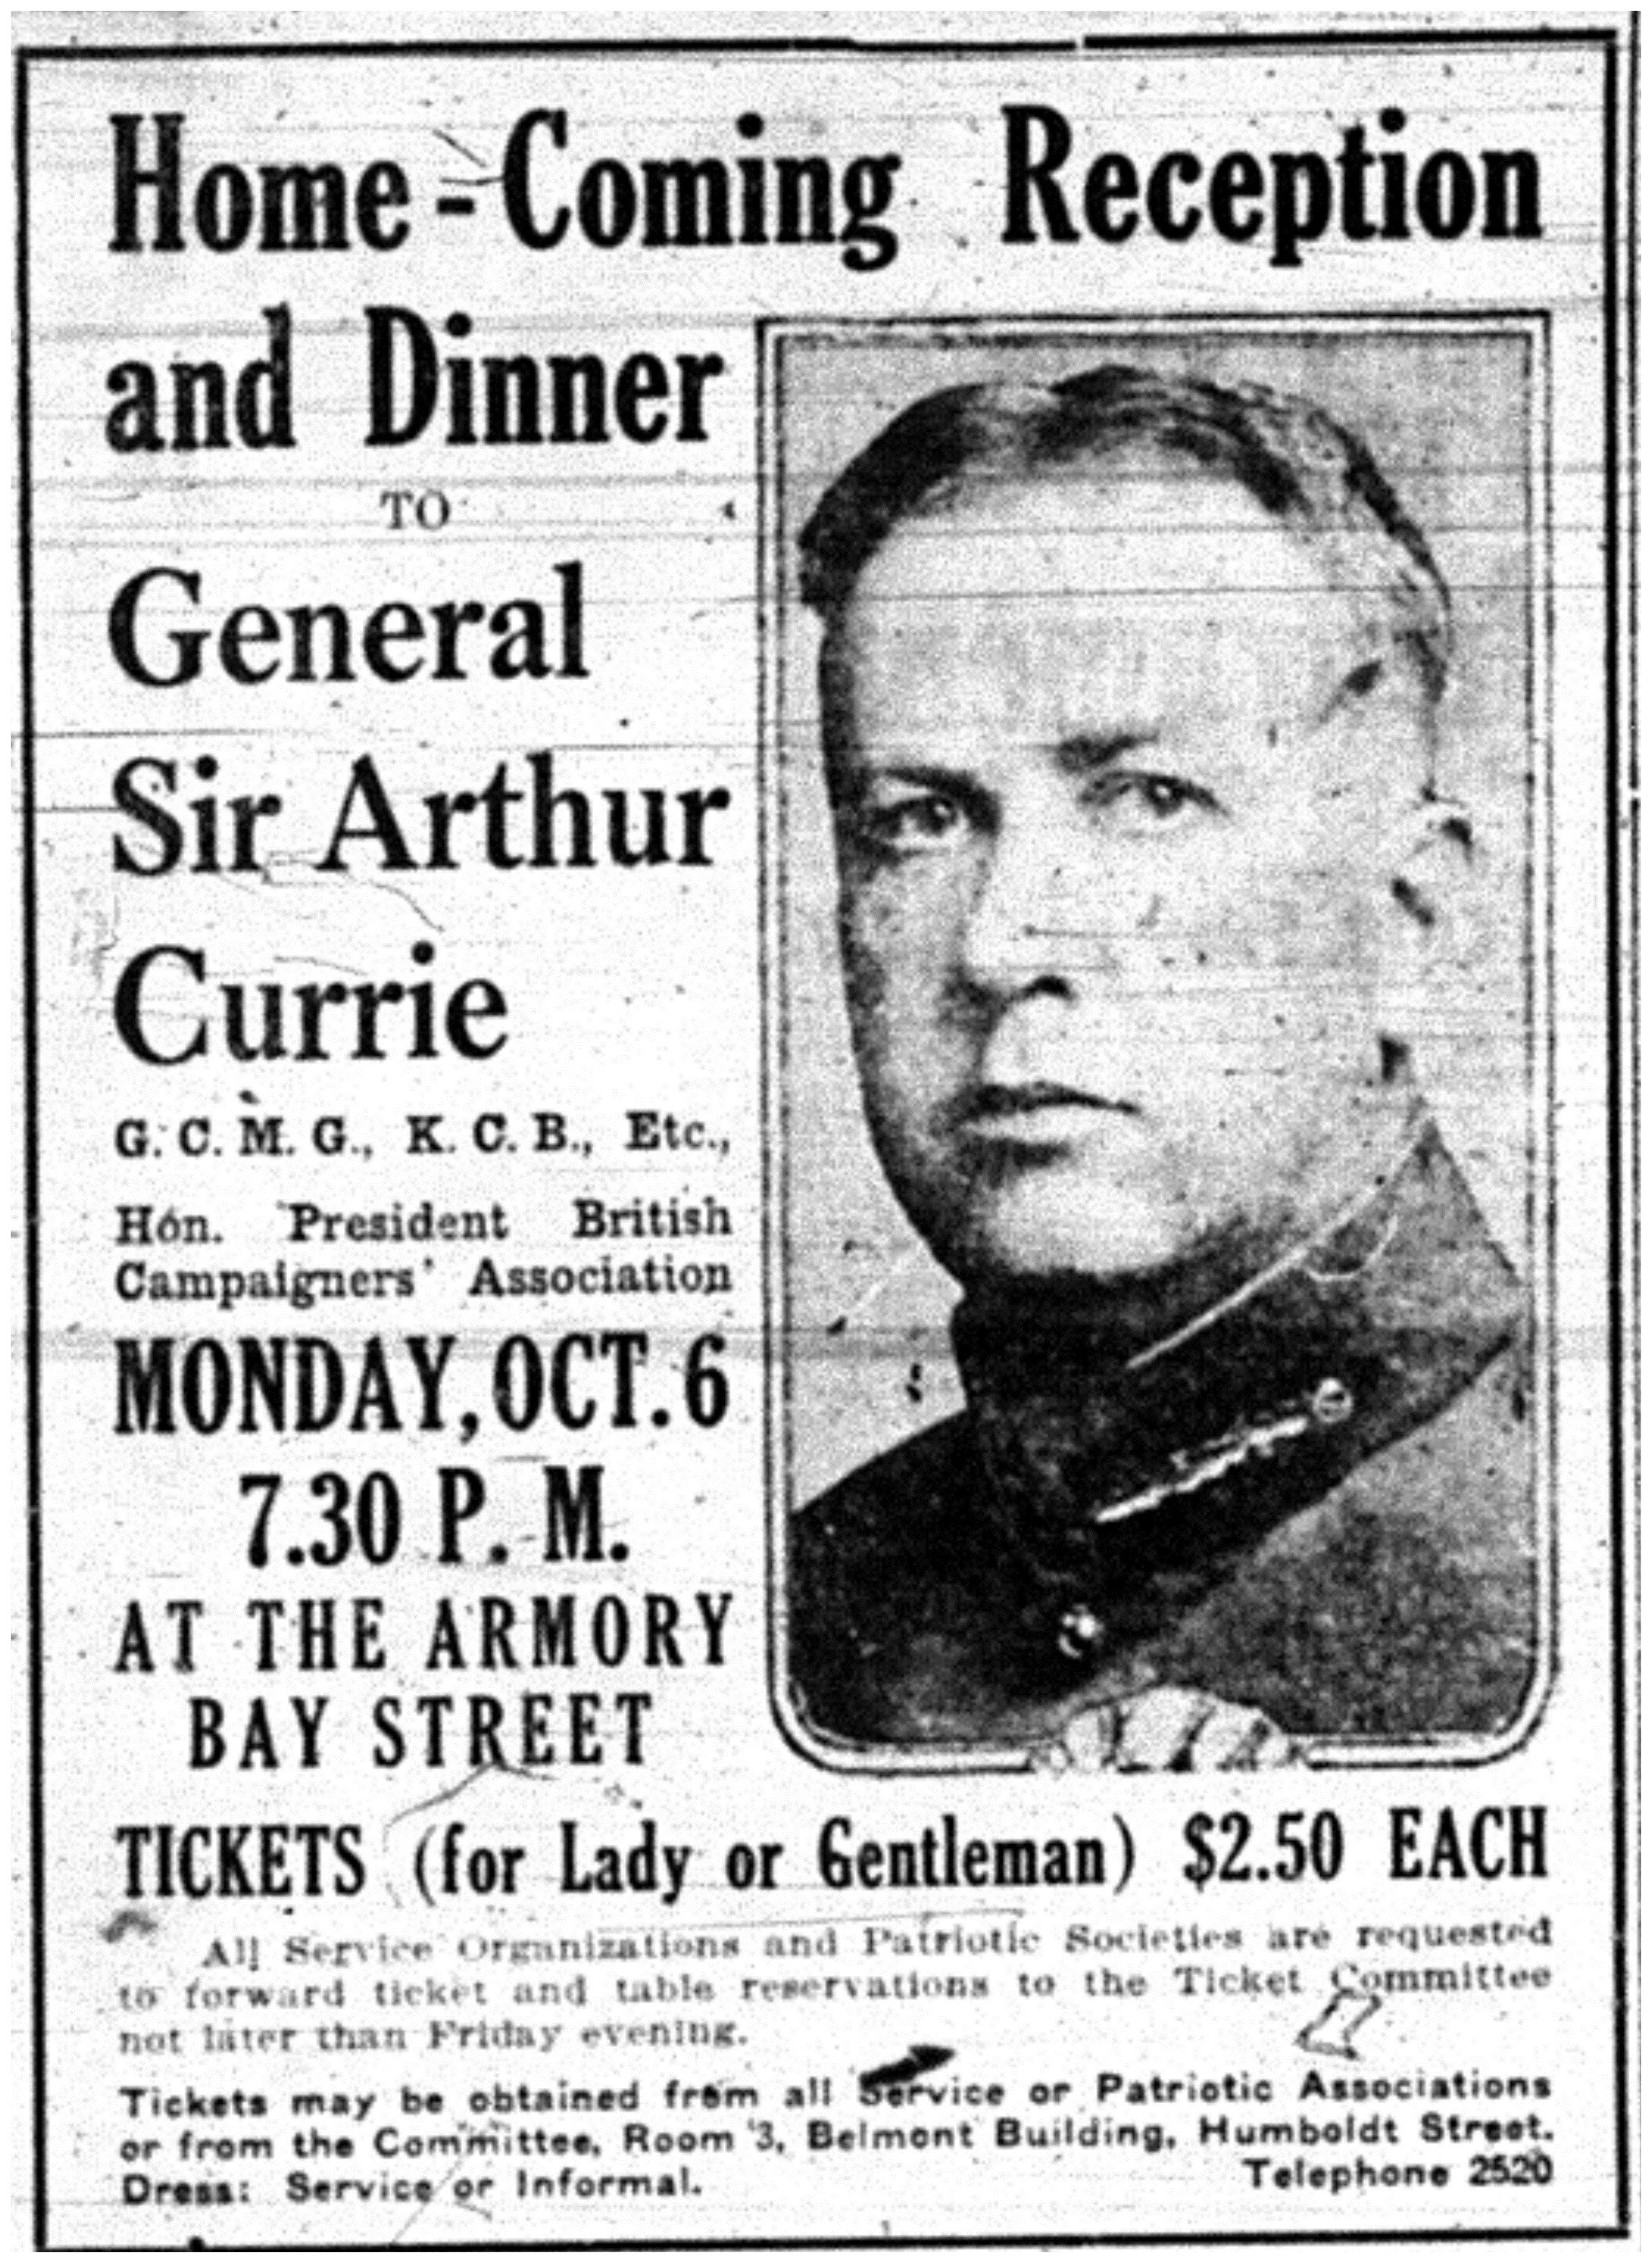 """Home-Coming Reception and Dinner to General Sir Arthur Currie"""